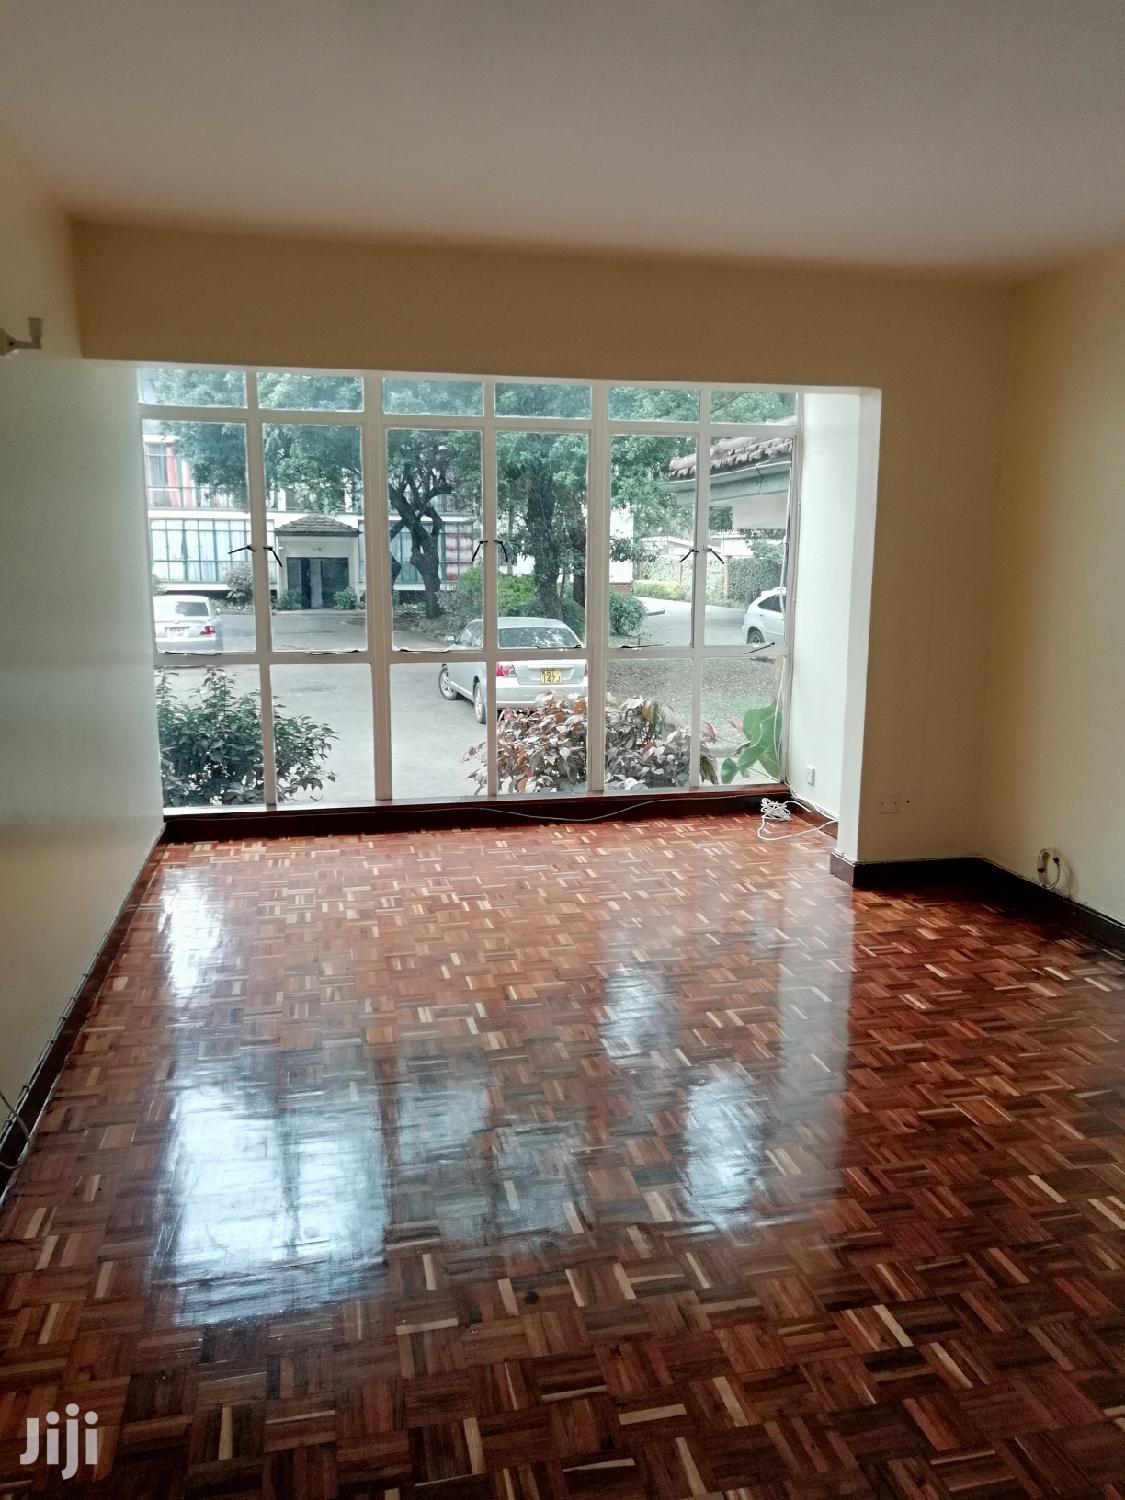 Old School 3/4brs Apartment With Garden And Very Secure   Houses & Apartments For Rent for sale in Kilimani, Nairobi, Kenya